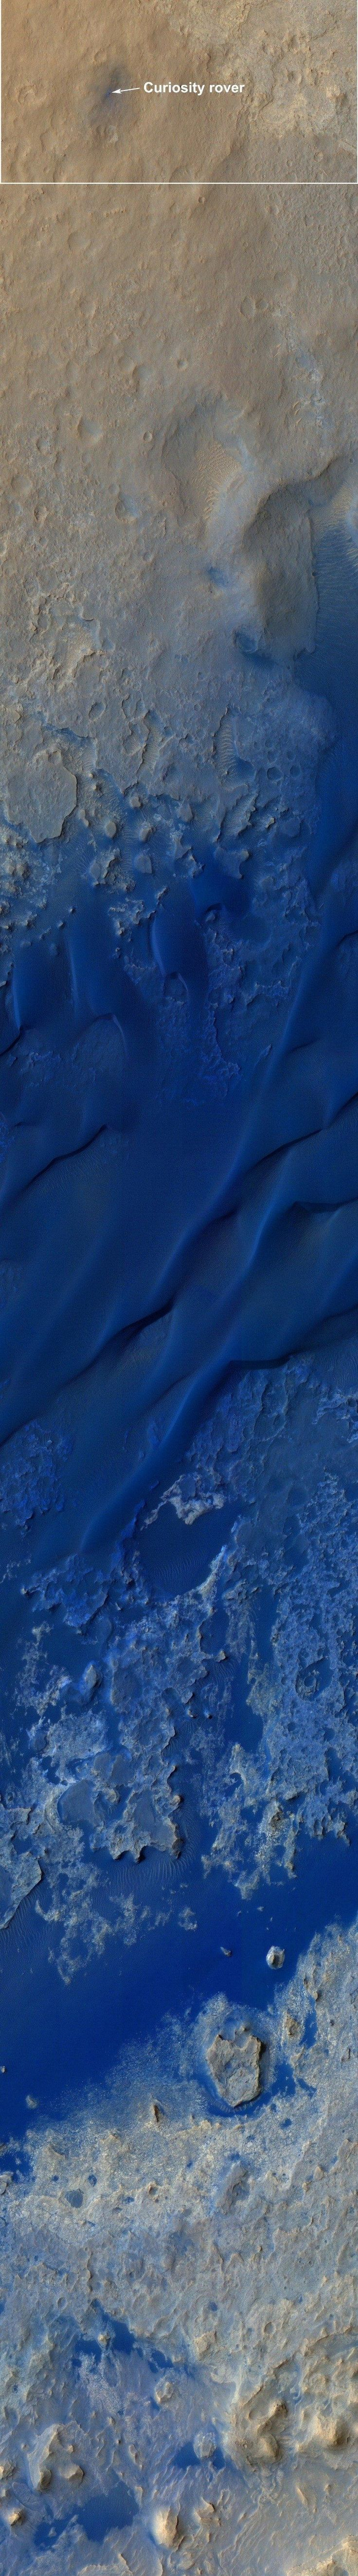 """""""A long strip image from the high-resolution camera on NASA's Mars Reconnaissance Orbiter shows the Curiosity rover's landing spot in Gale Crater, as well as the terrain leading south toward the mountain known as Aeolis Mons or Mount Sharp. The colors have been stretched to emphasize differences in surface composition. A dune field can be seen in deep shades of blue. Beyond the dunes, mesas and buttes are part of the terrain surrounding the 3-mile-high mountain."""""""